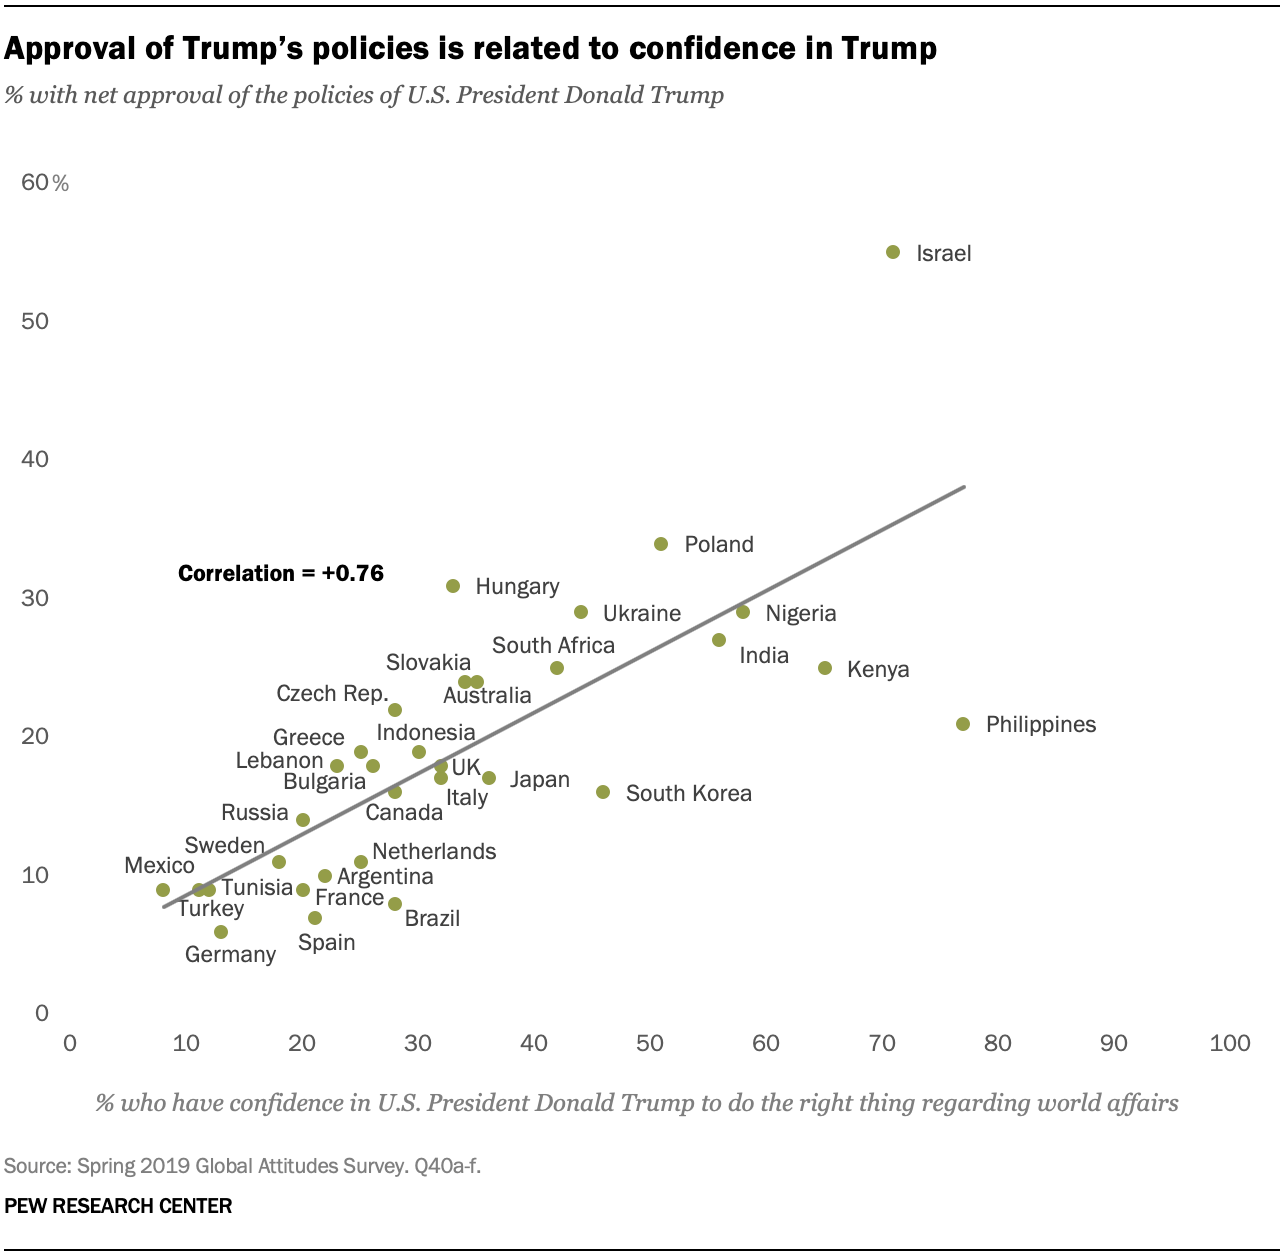 Approval of Trump's policies is related to confidence in Trump